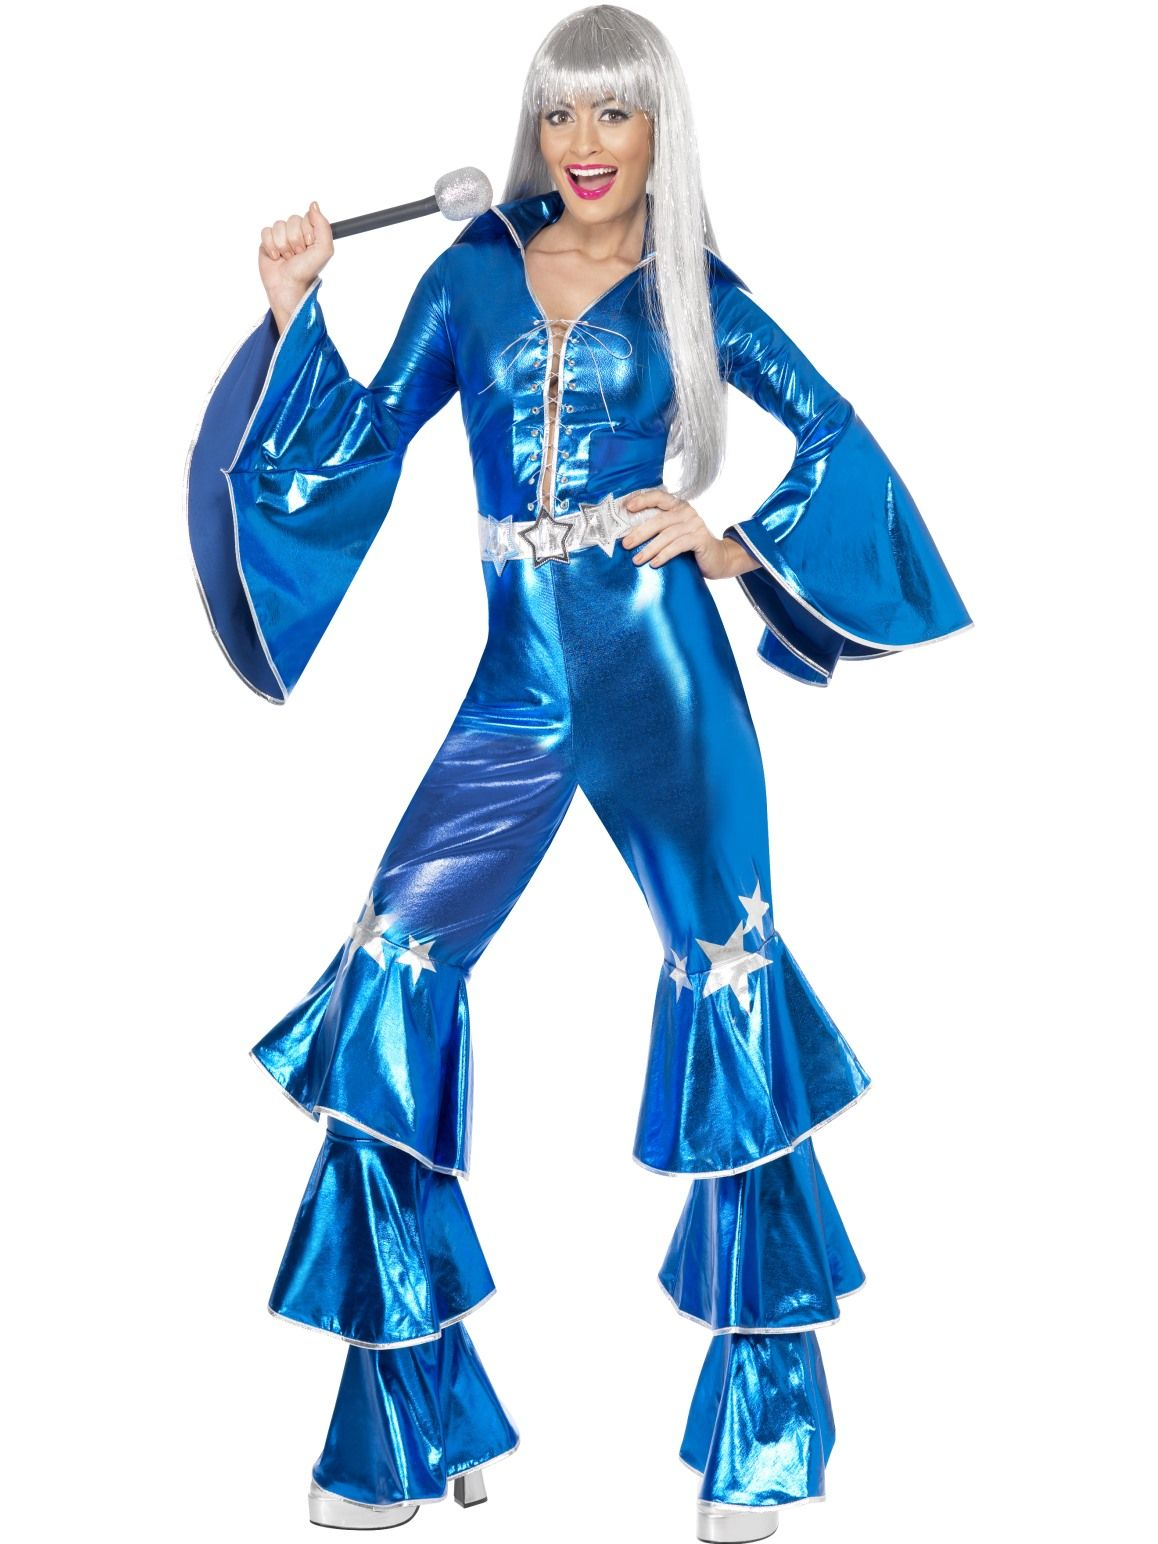 Dancing Dream Blue 70s Costume - Buy